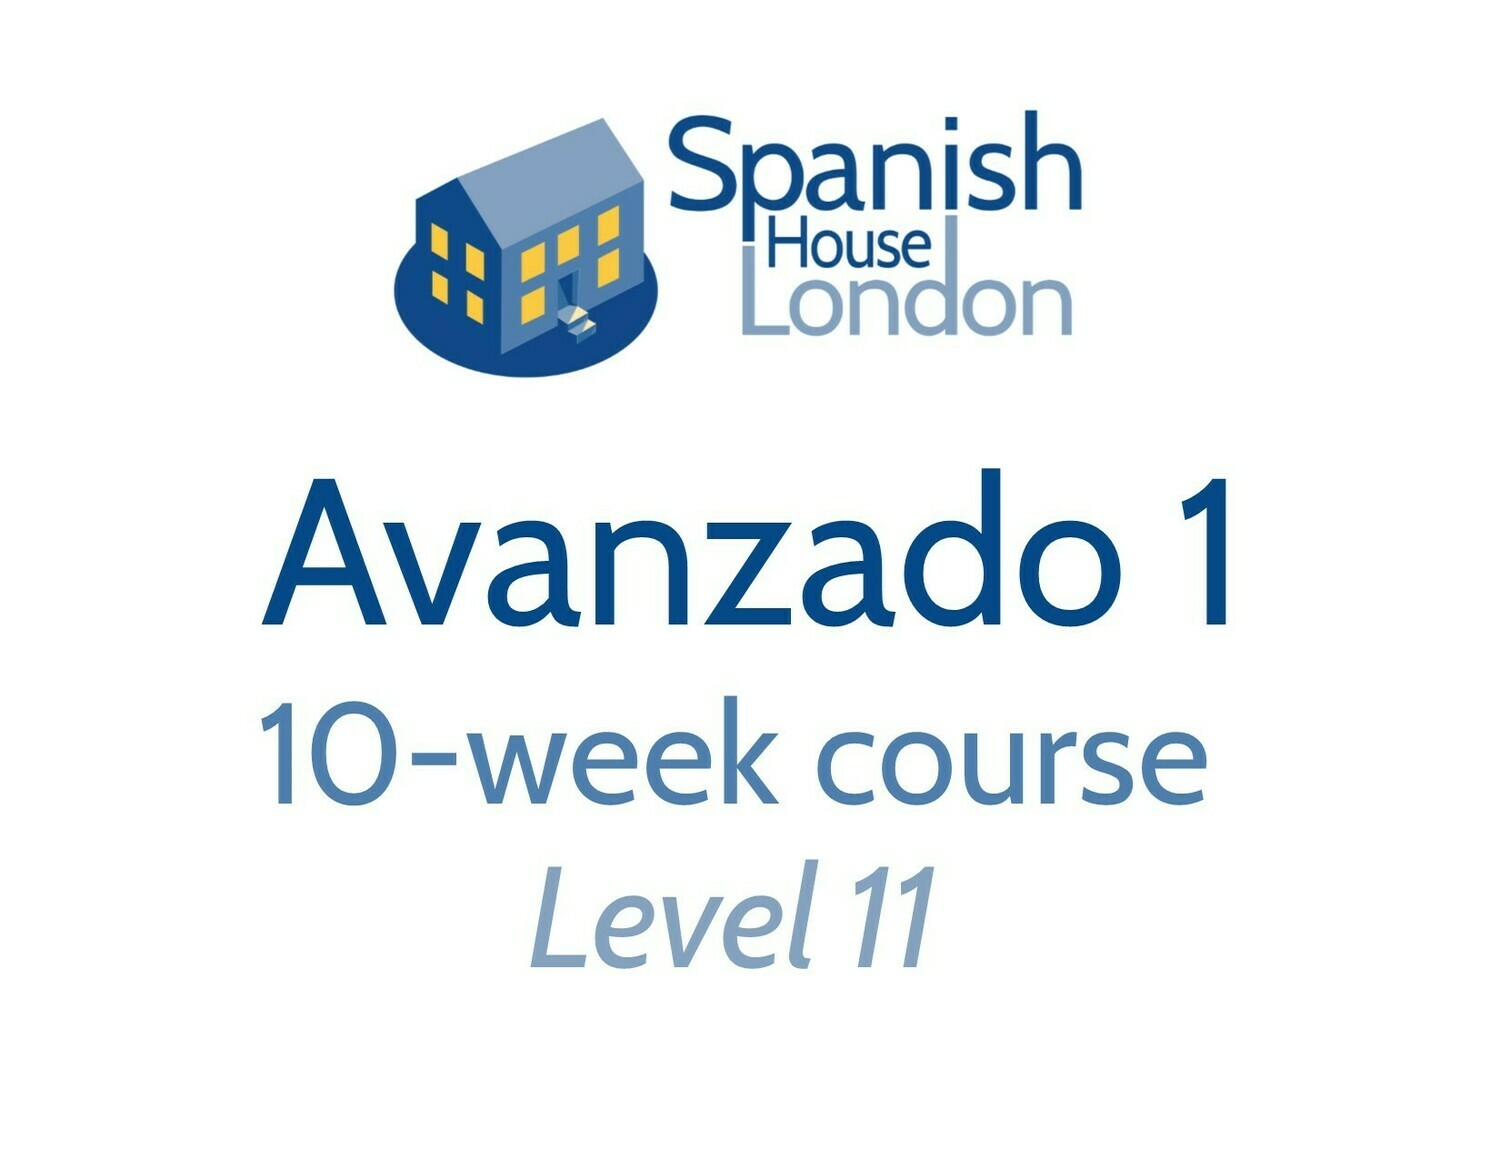 Avanzado 1 Course starting on 15th March at 6pm